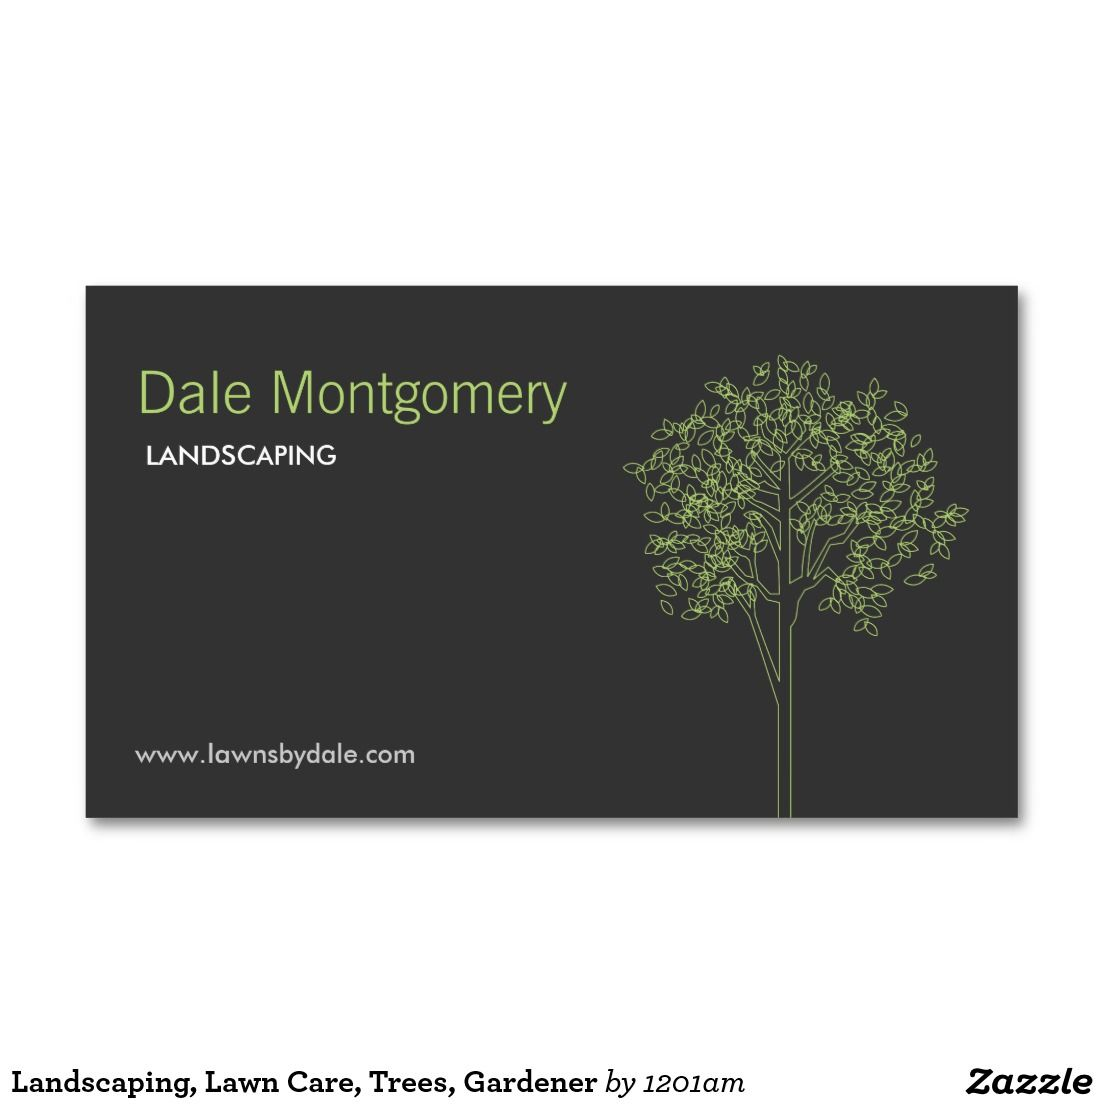 Landscaping, Lawn Care, Trees, Gardener DoubleSided